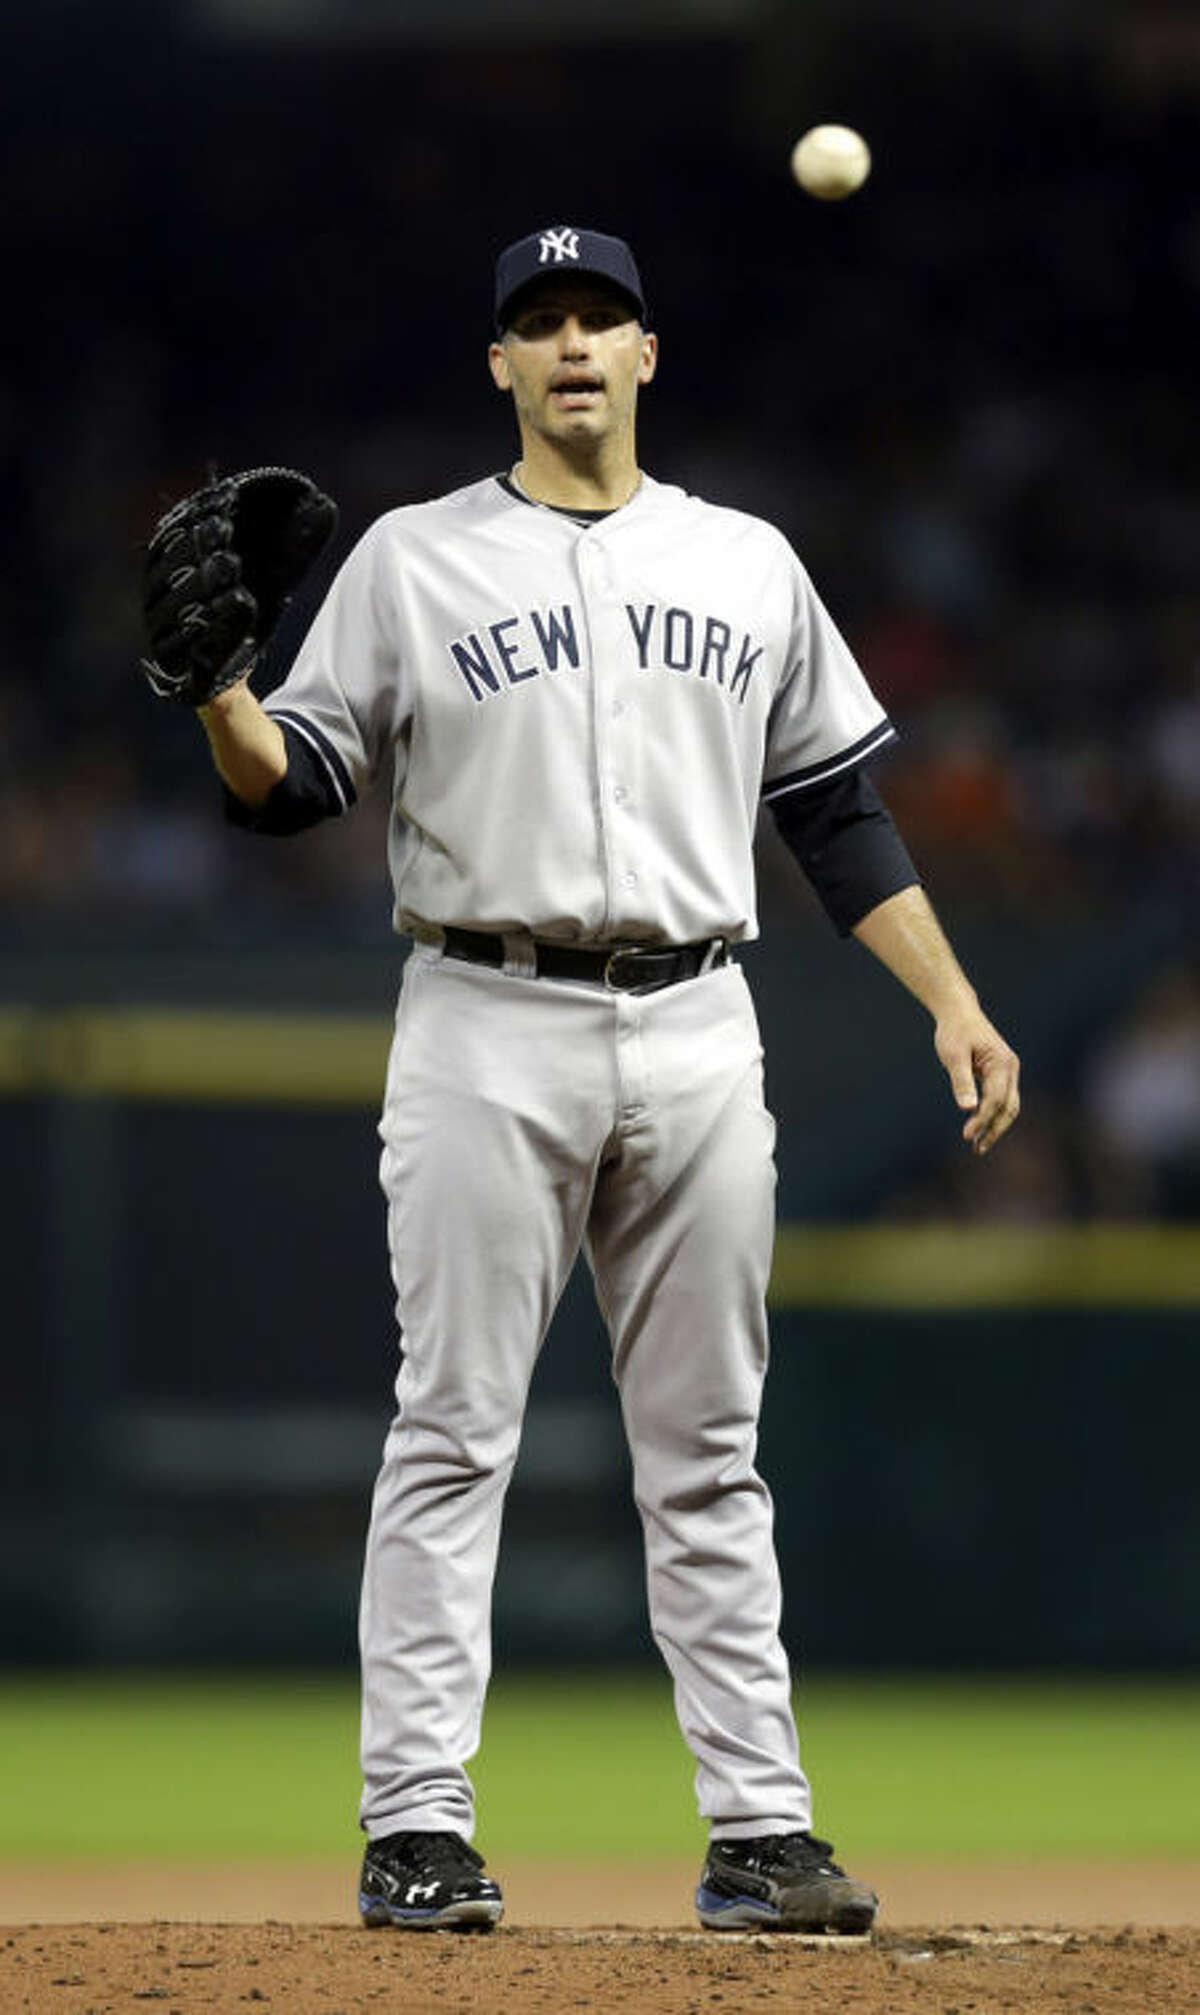 New York Yankees starting pitcher Andy Pettitte reaches for the ball after Houston Astros' Jose Altuve scored during the fourth inning of a baseball game Saturday, Sept. 28, 2013, in Houston. (AP Photo/David J. Phillip)